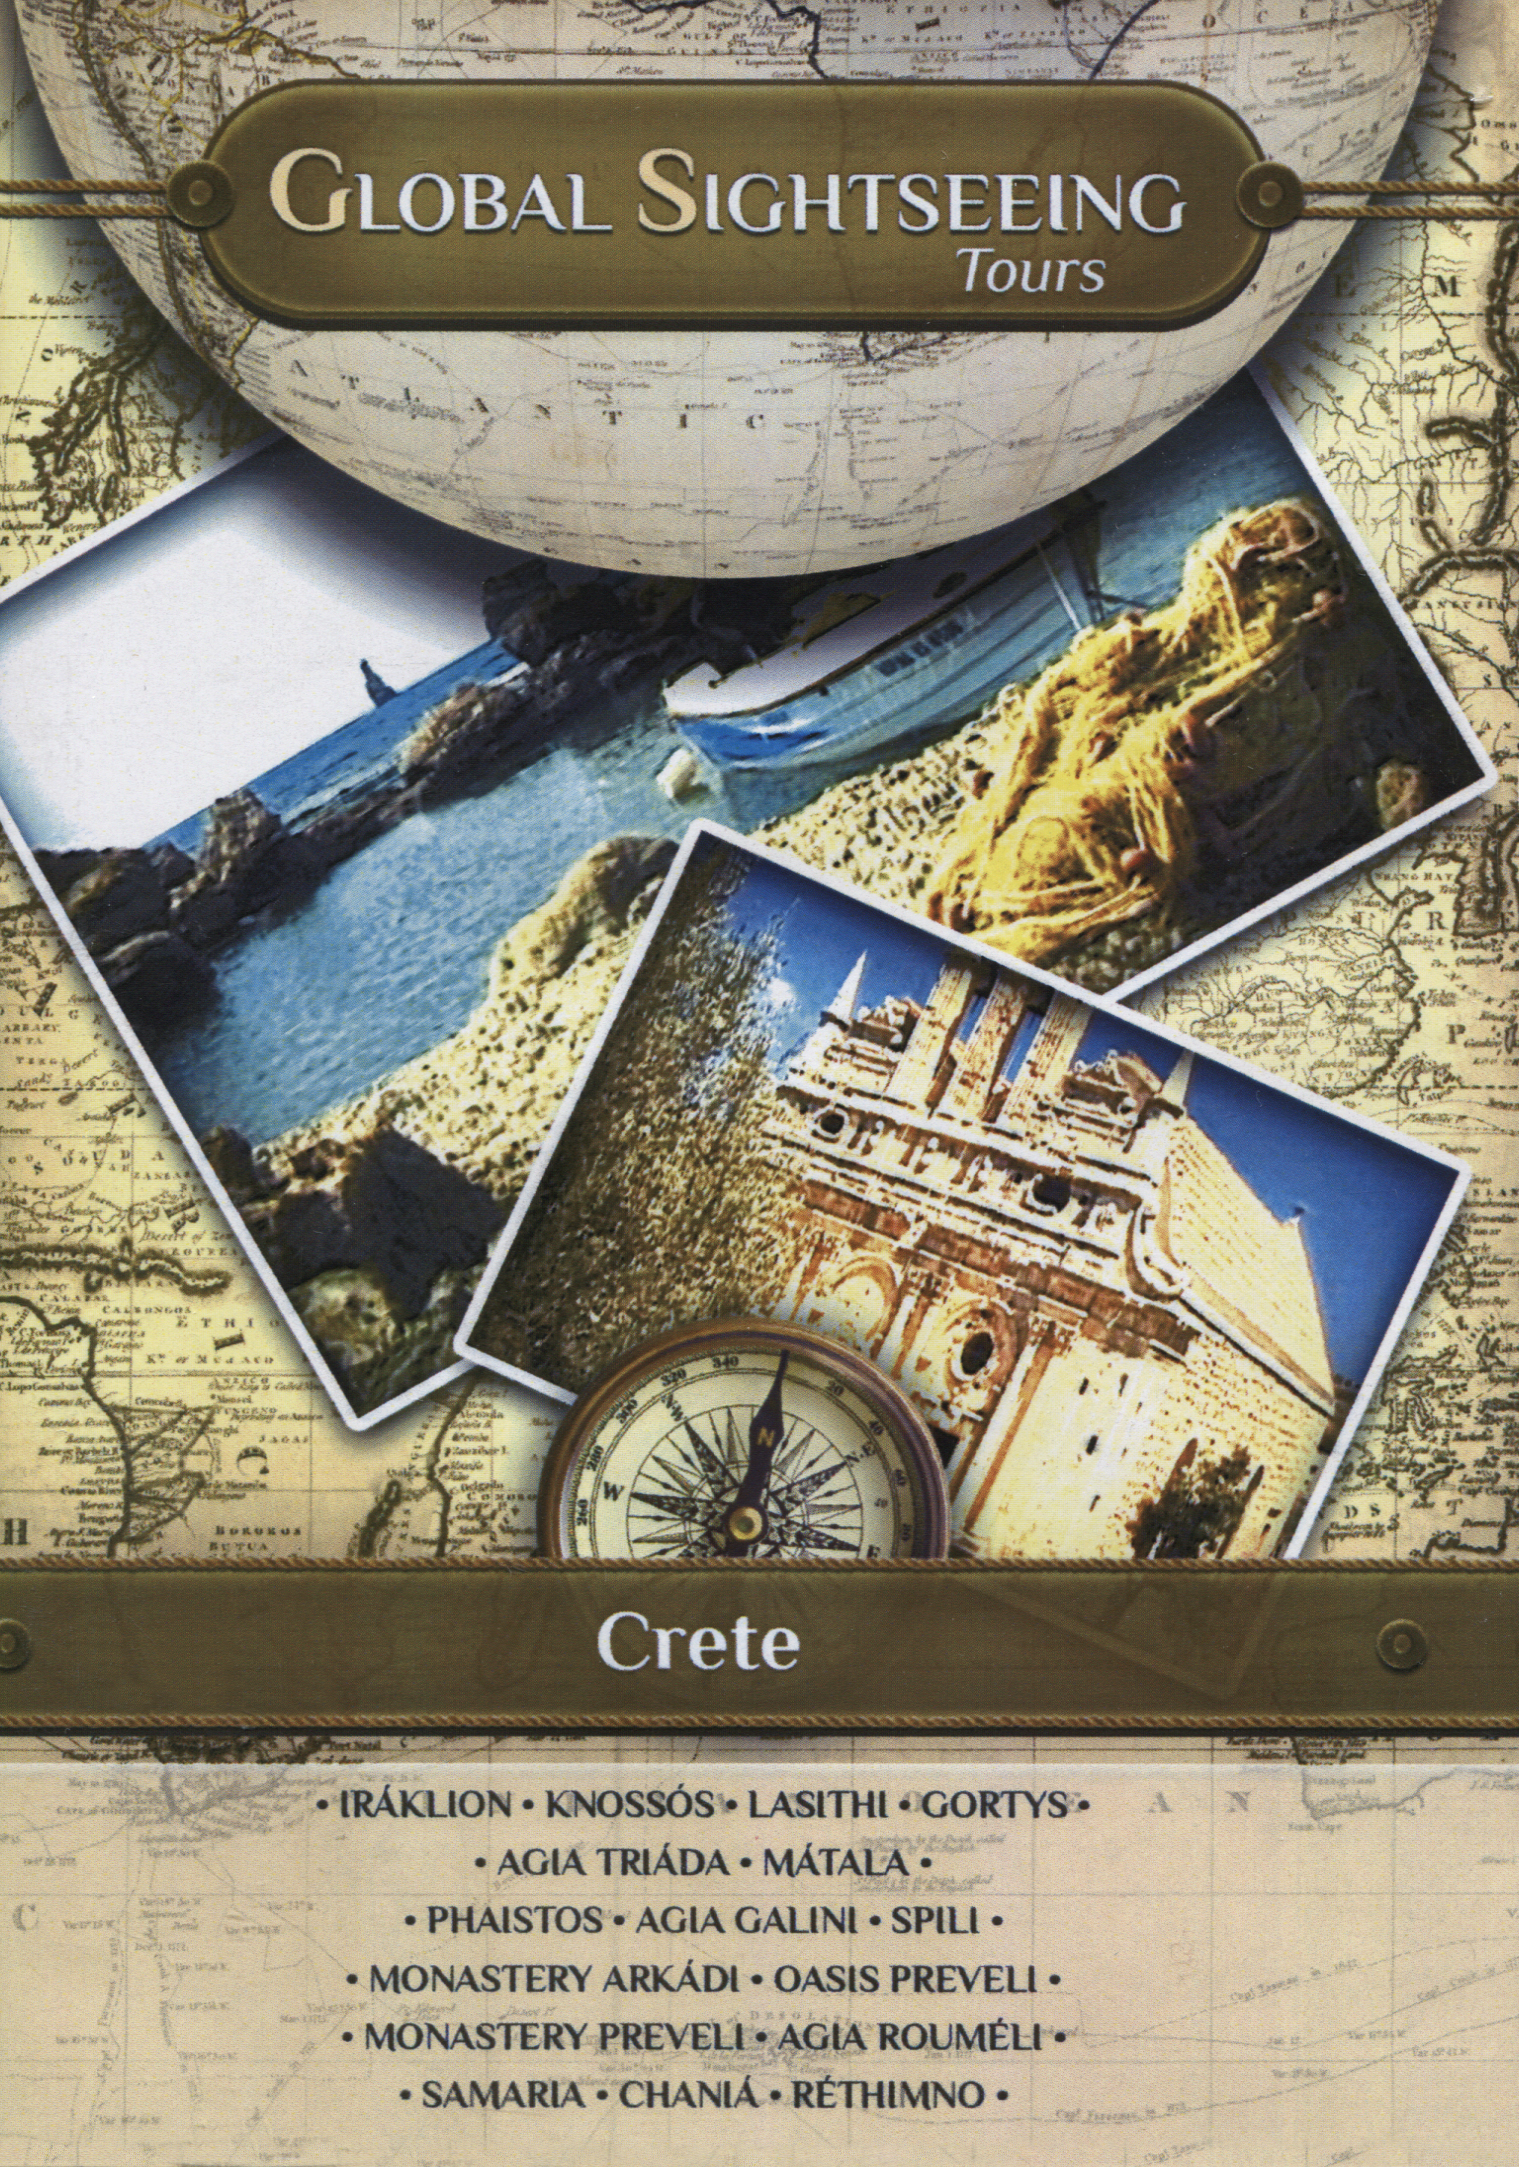 Global Sightseeing Tours: Crete